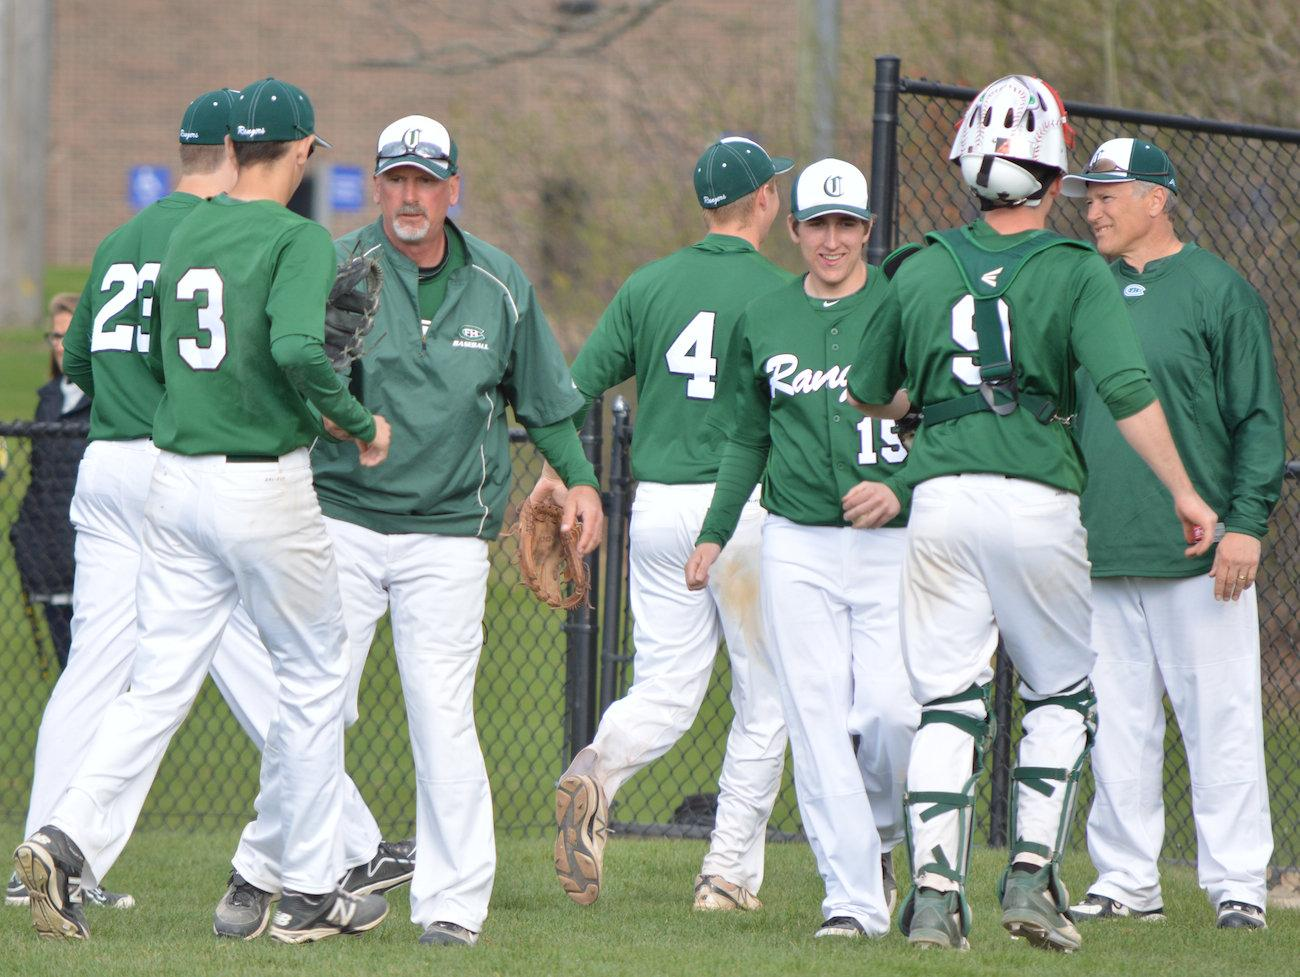 Young Baseball Team Looks to Improve on Last Year's Successful Season